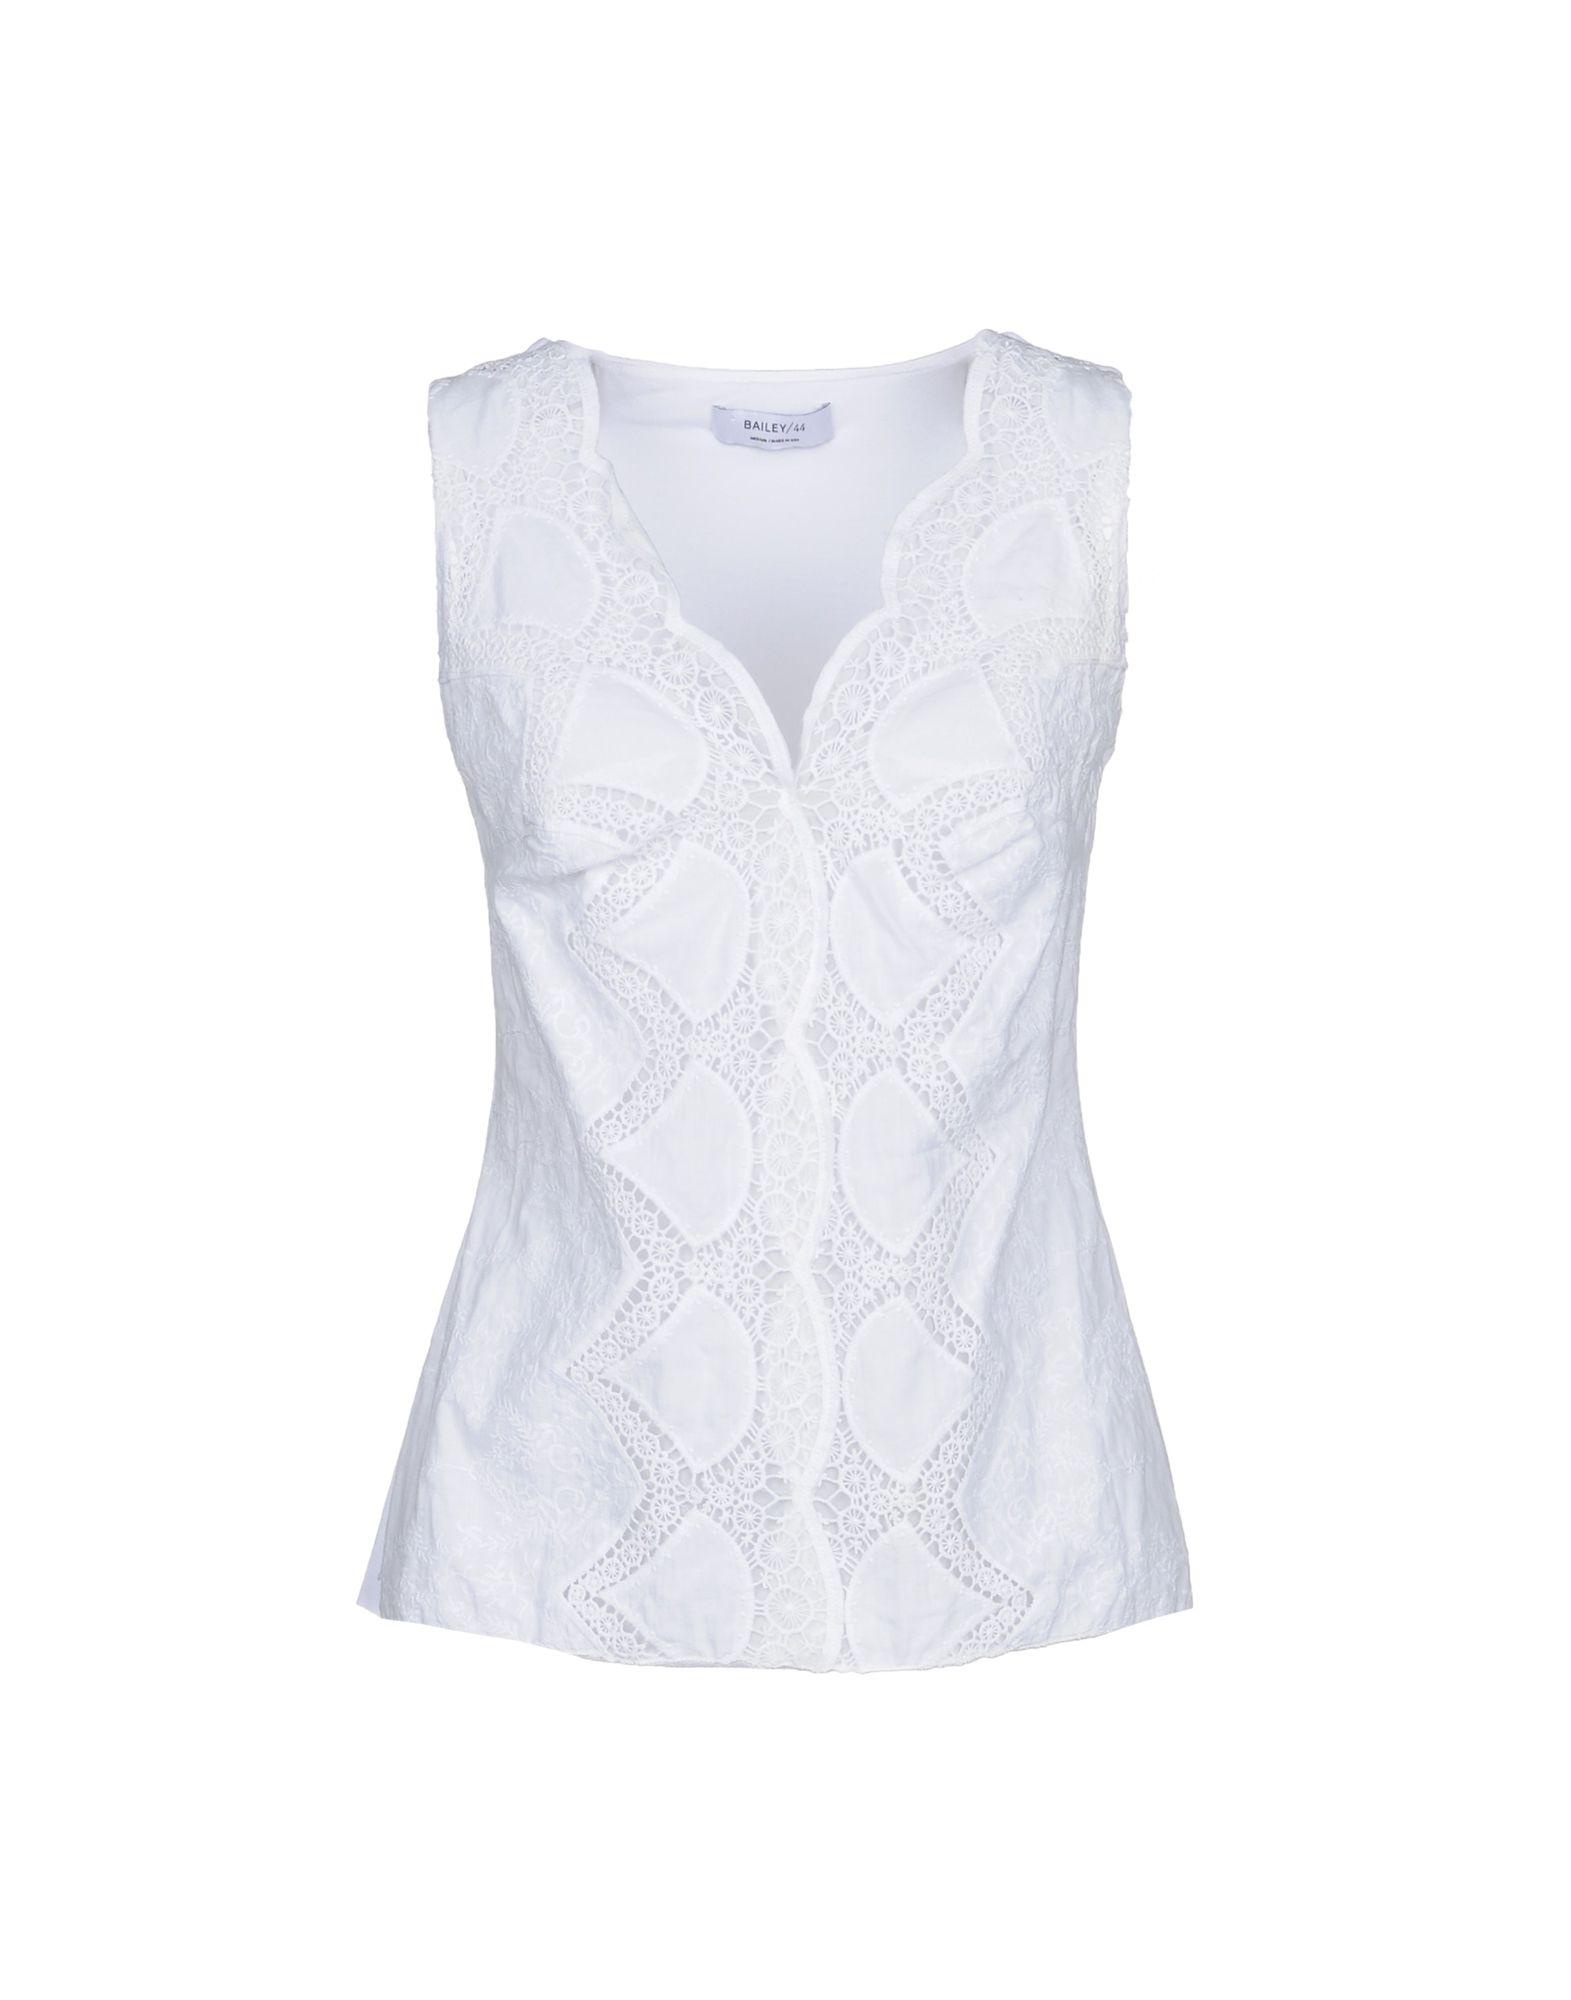 Bailey44 Tops In White